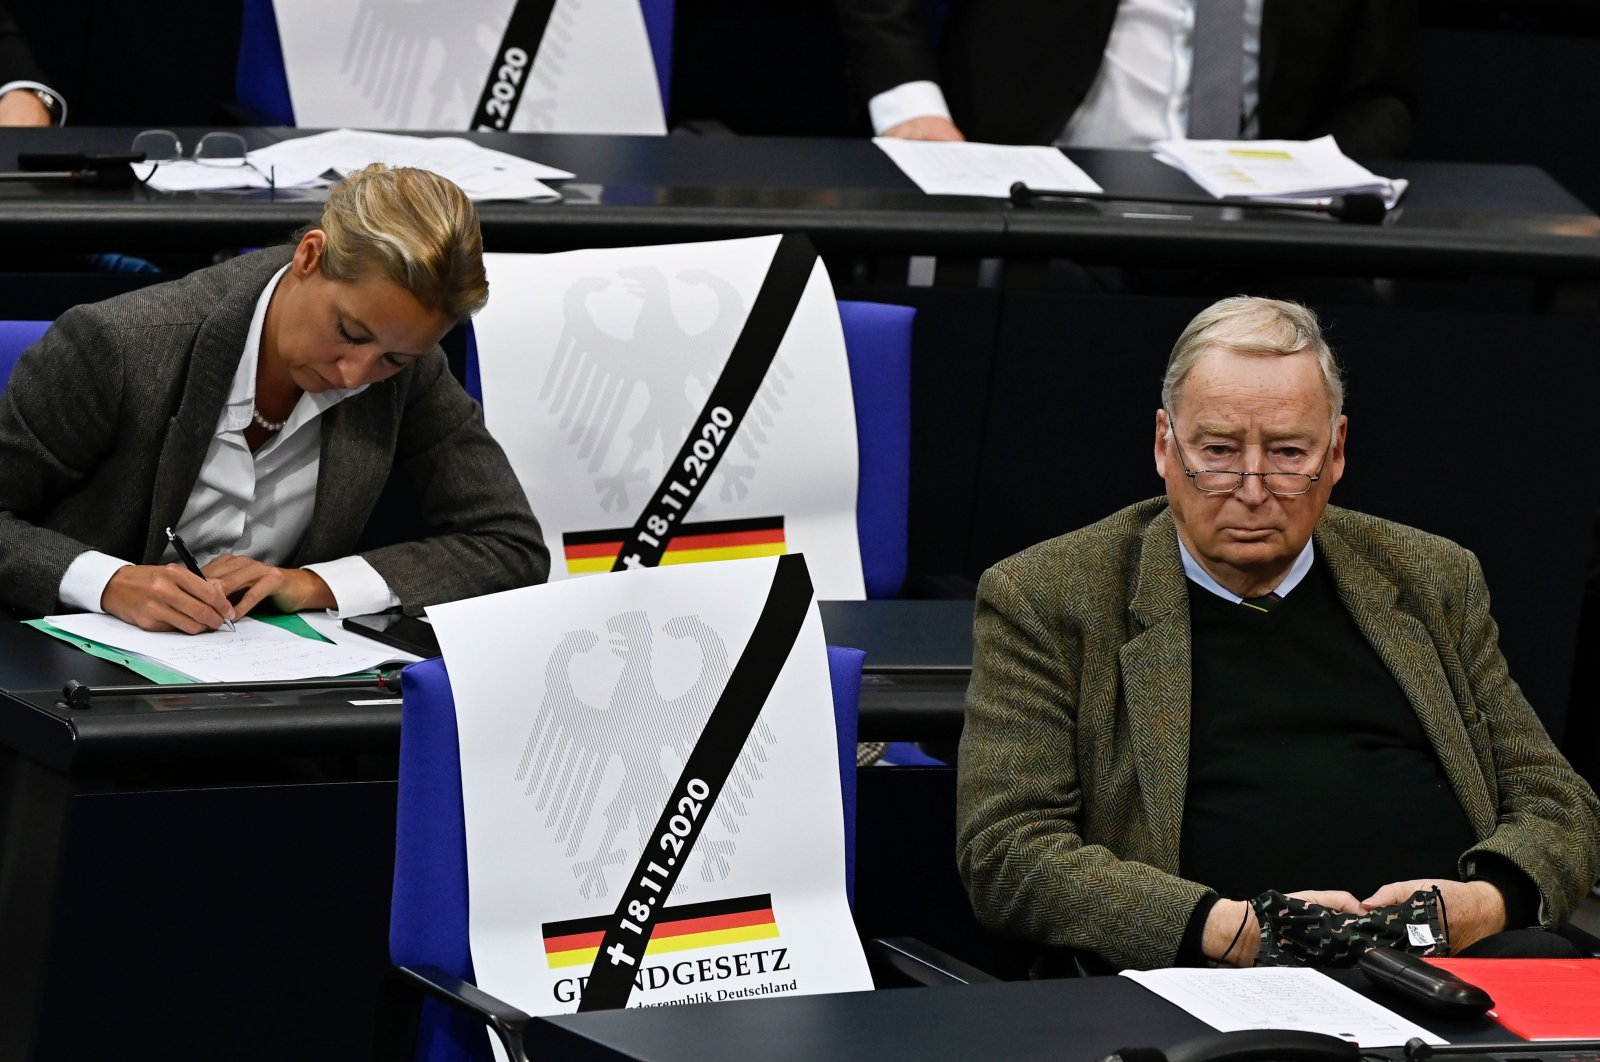 """Alexander Gauland of the Alternative for Germany (AfD) far-right party sits next to a sign reading """"Constitution"""" during a session at the Bundestag (lower house of parliament), Berlin, Nov. 18, 2020. (AFP Photo)"""